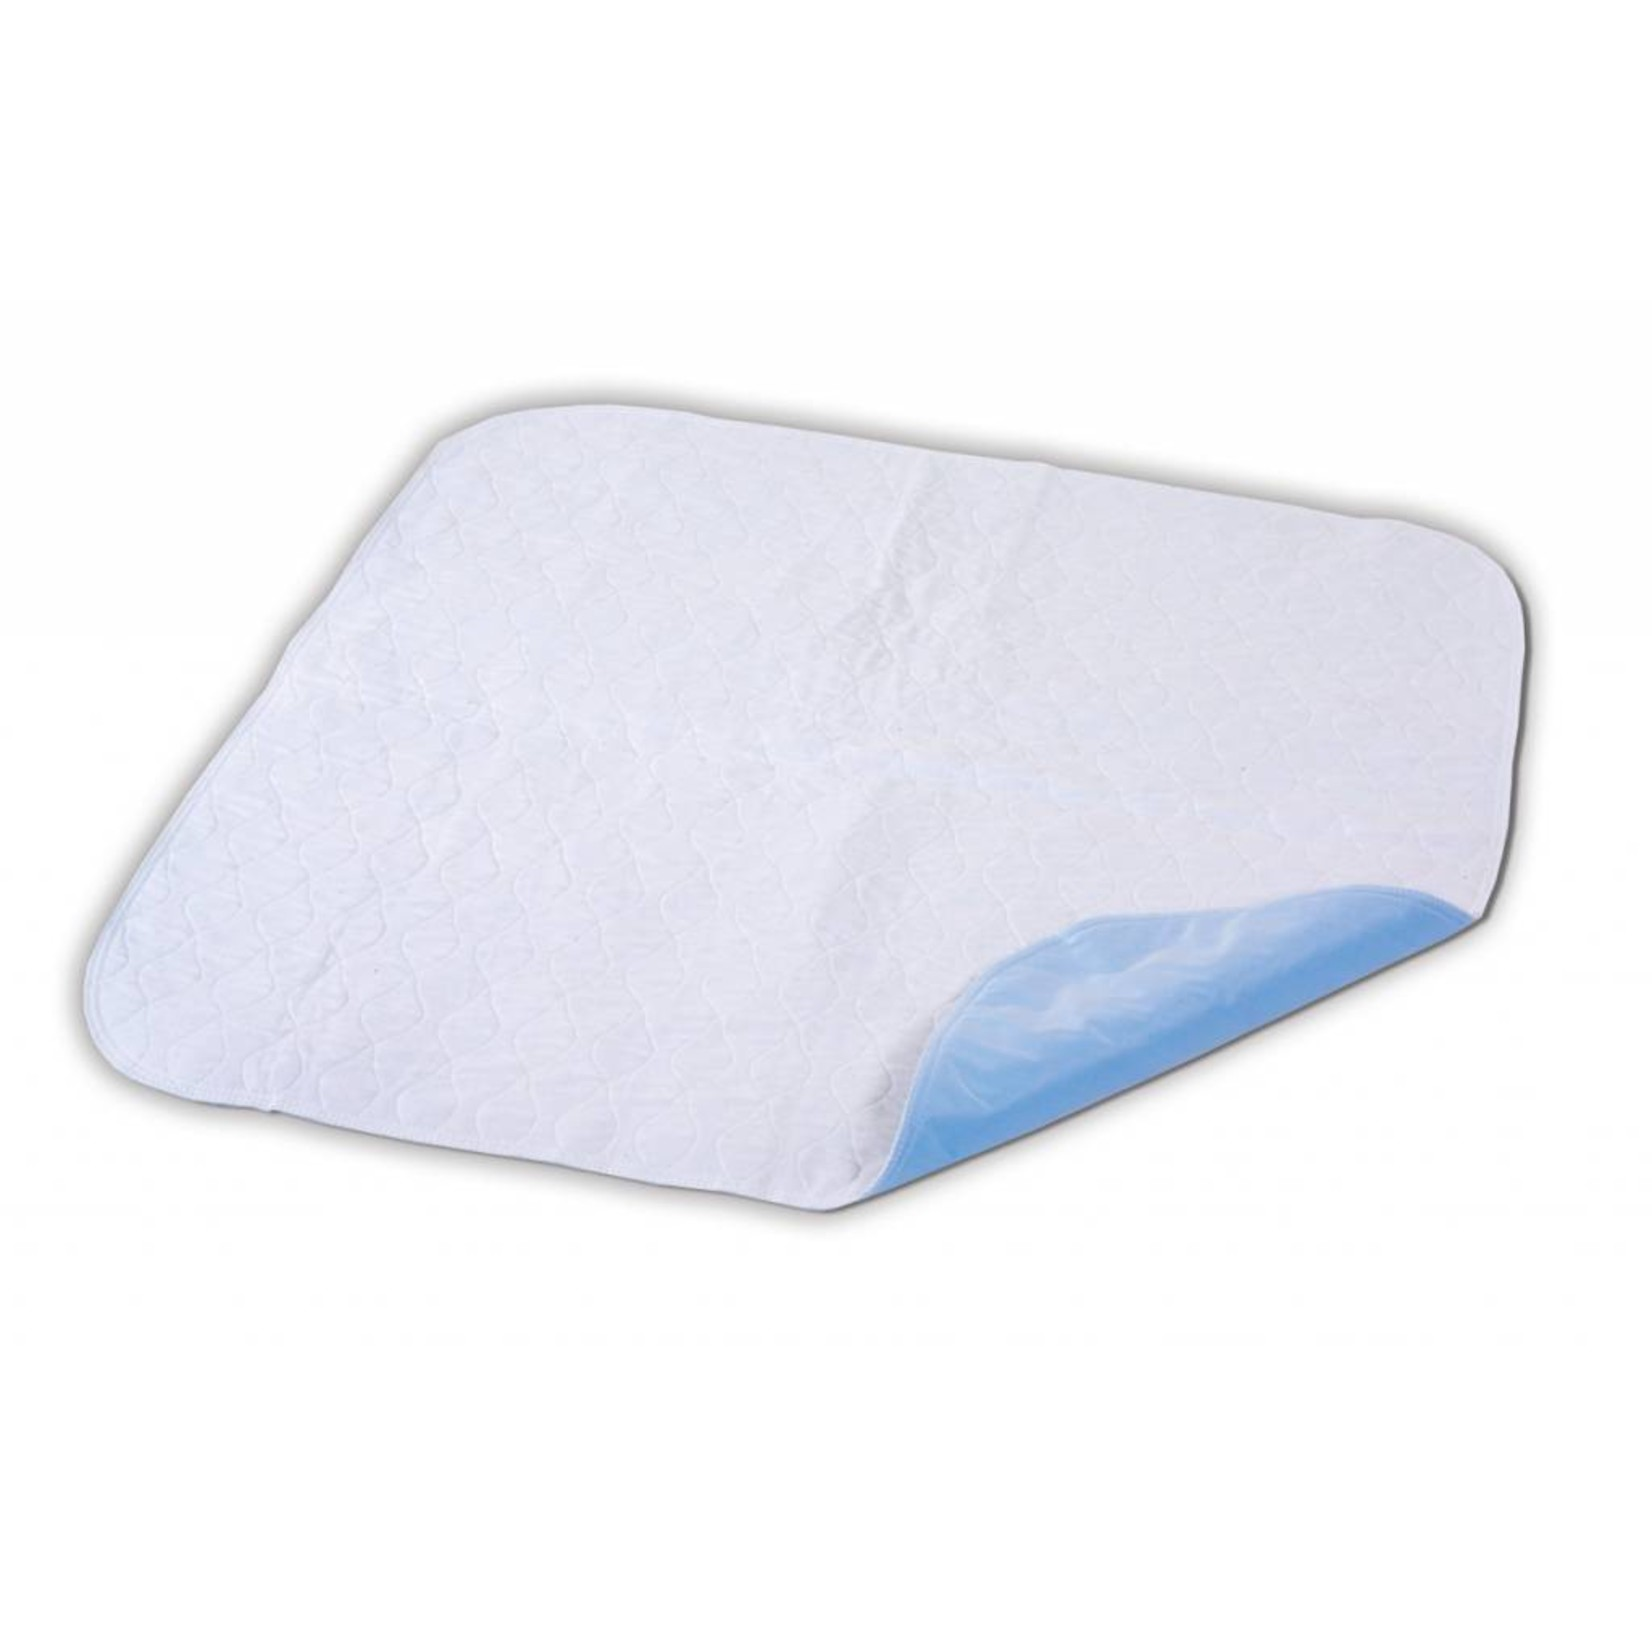 Essential Medical Underpad-reusable Chair pad 17x (6)